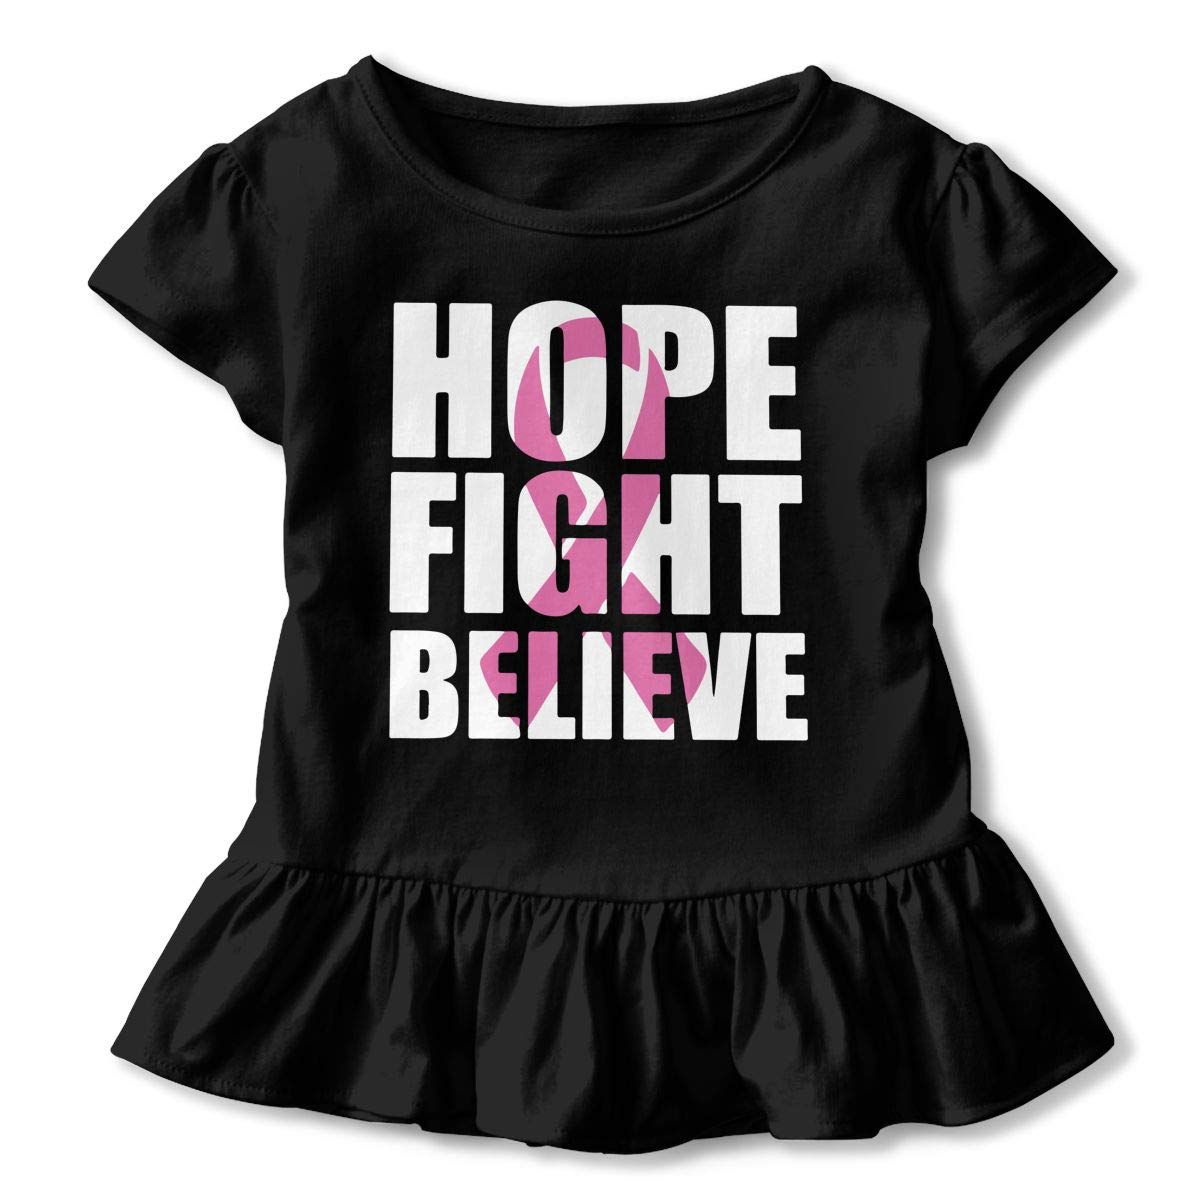 SHIRT1-KIDS Breast Cancer Hope Fight Believe T-Shirt Childrens Girls Short Sleeve Ruffles Shirt Tee for 2-6T